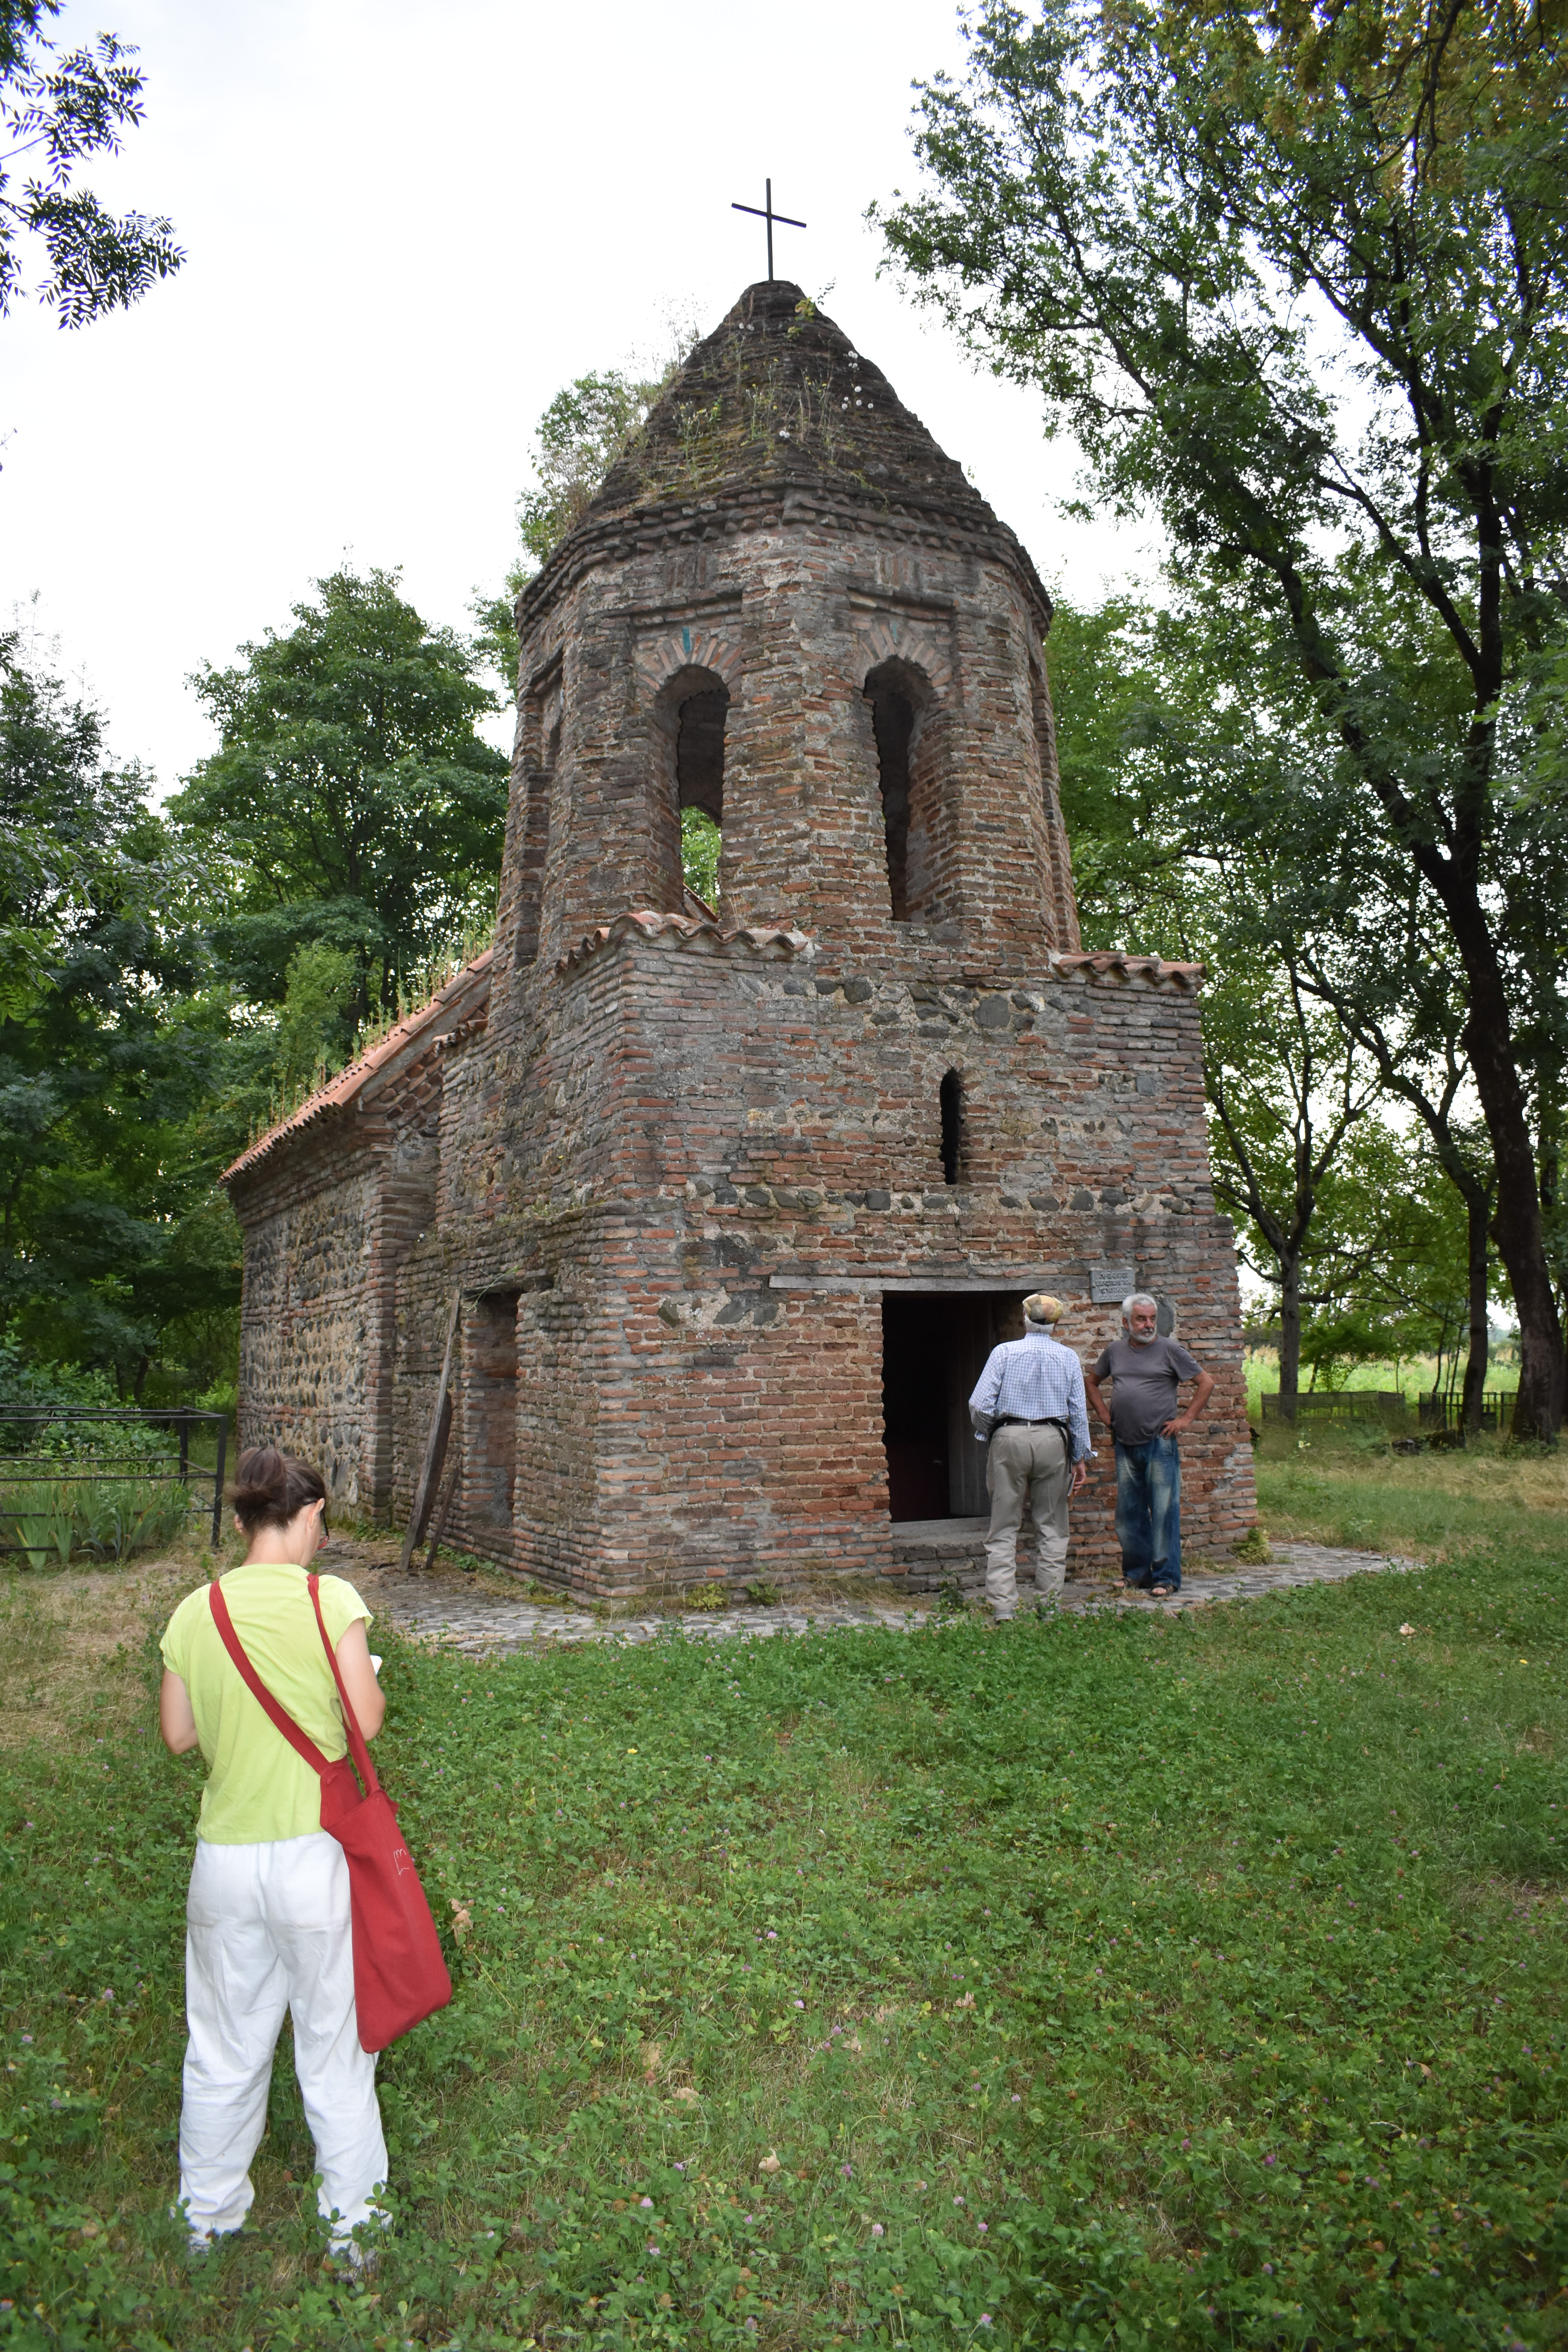 georgian-italian-lagodekhi-archaeological-project_chiesa-medievale_foto-unive